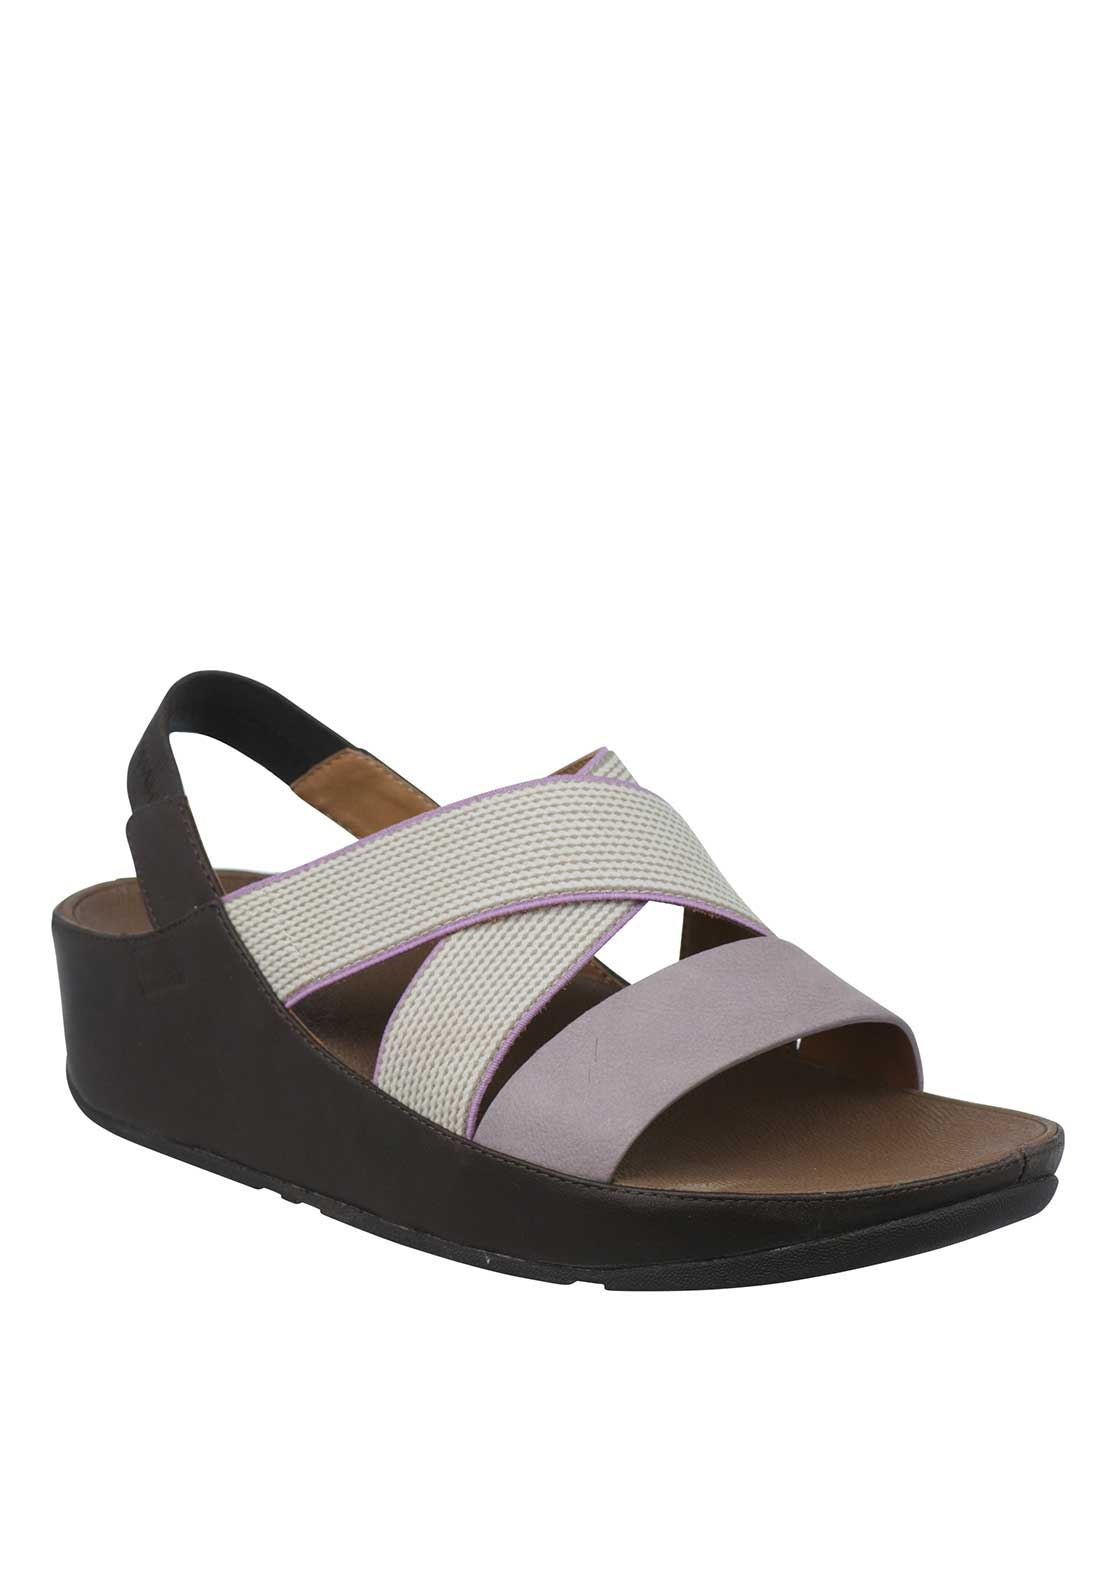 Fit Flop™ Leather Canvas Strap Sling Back Sandals, Lilac and Nude